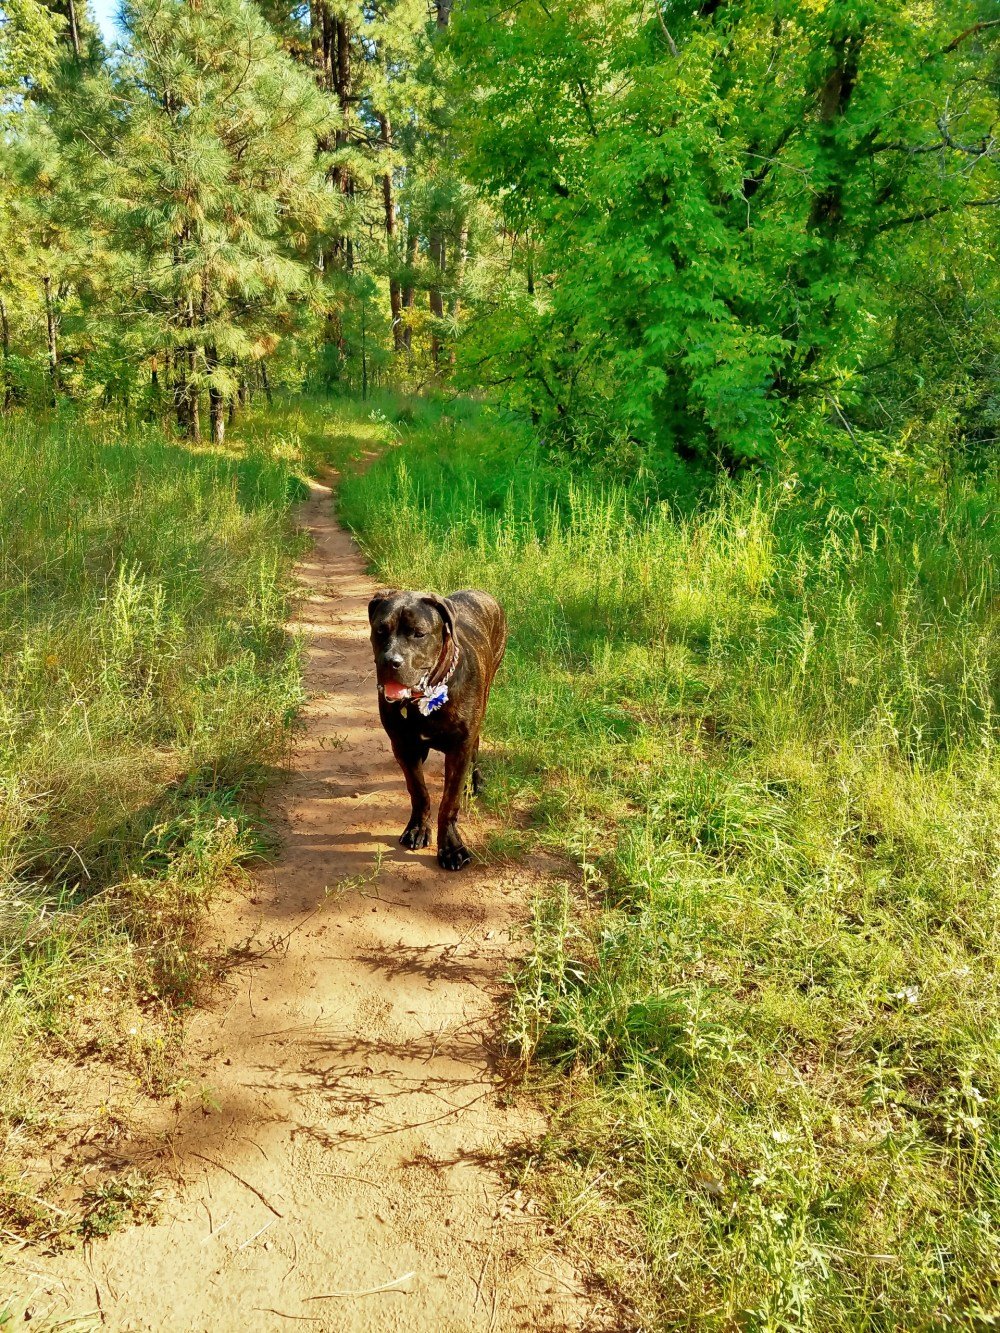 Daisy takes to the trail ready for some play time in the creek